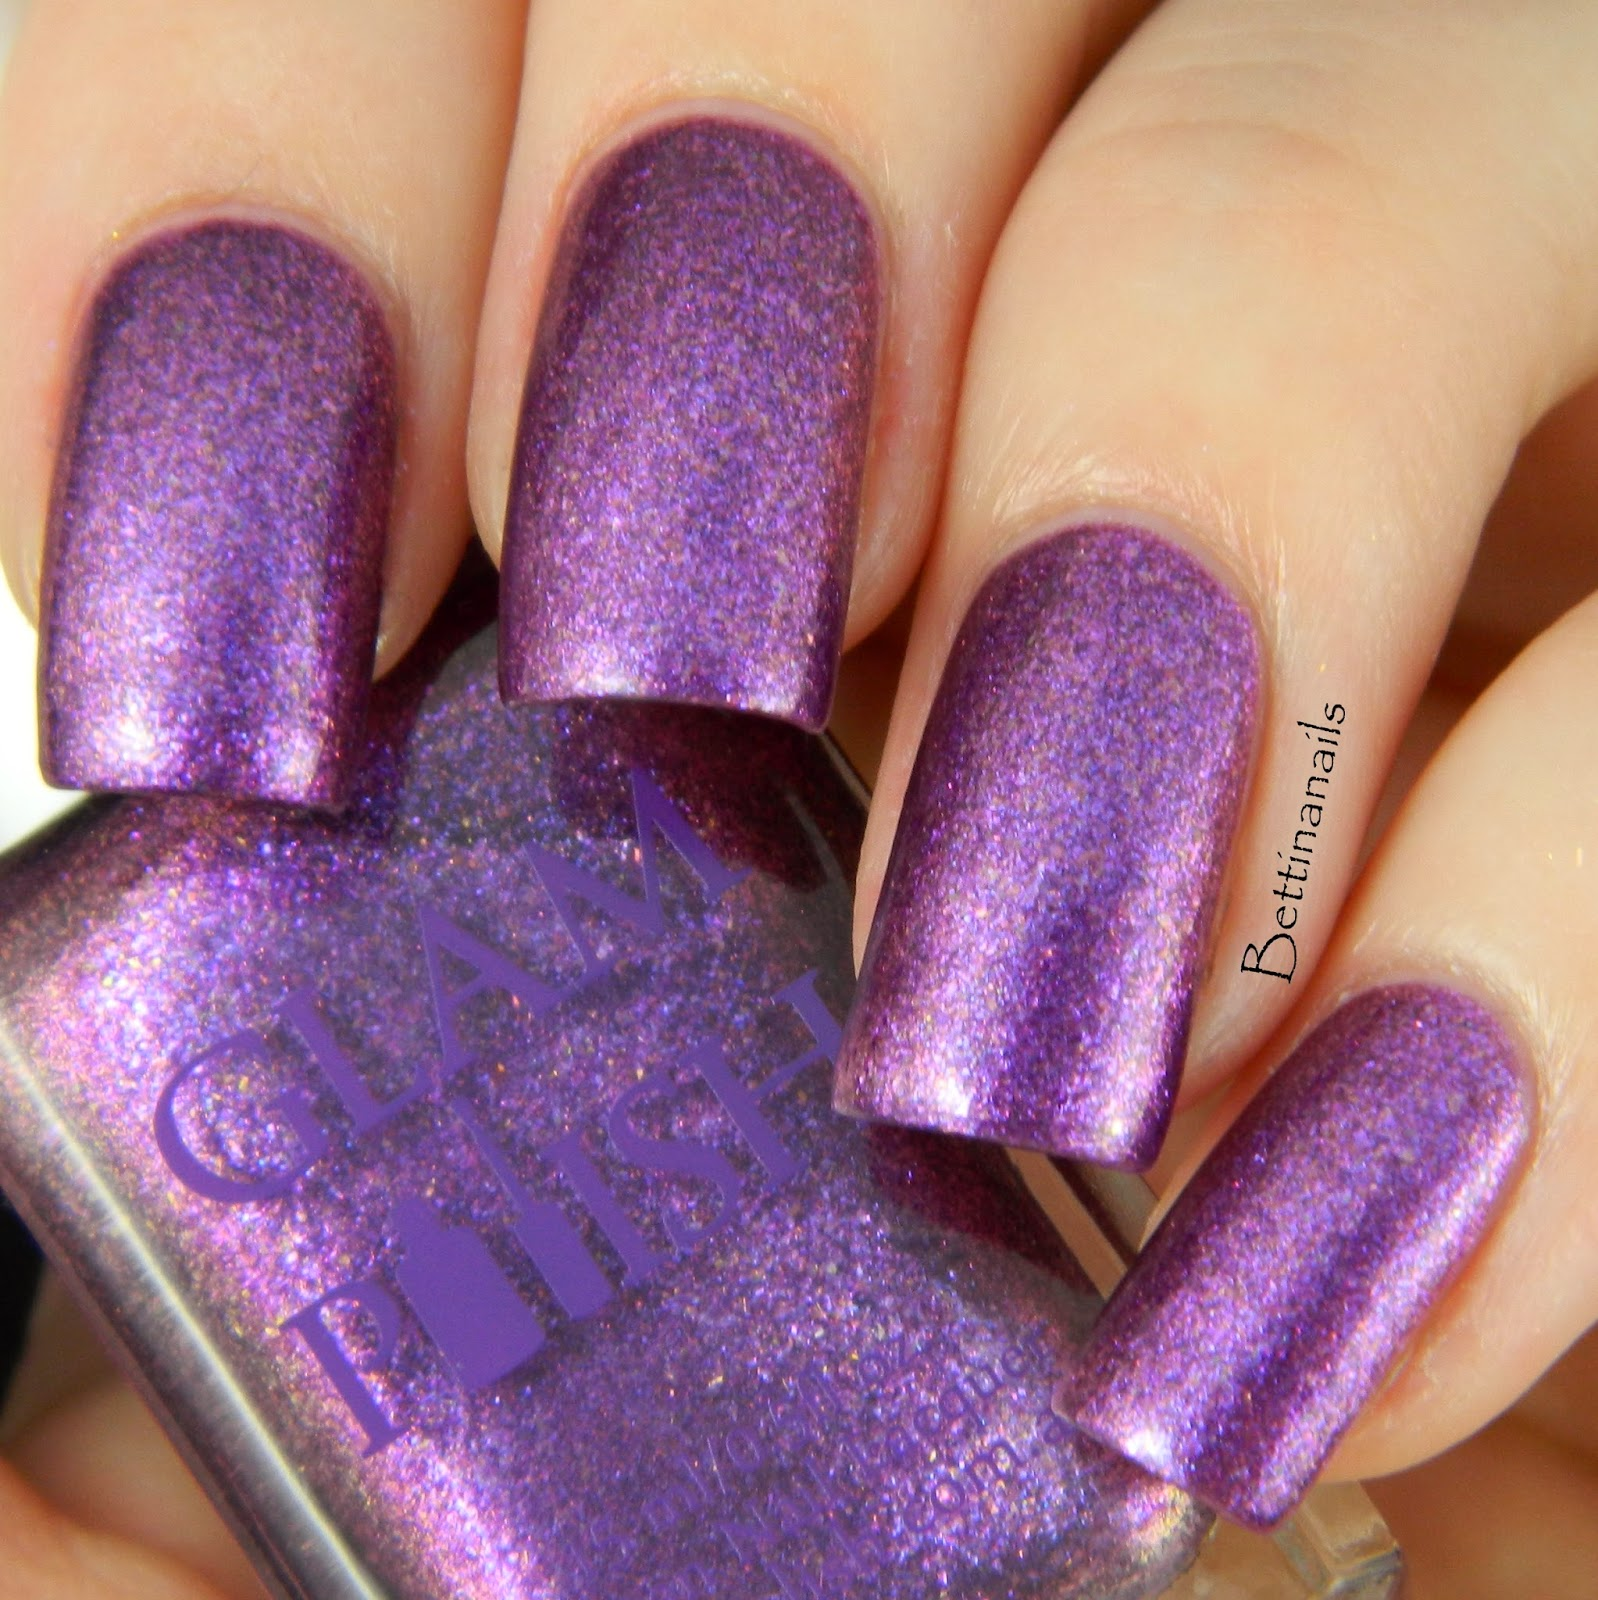 Bettina Nails: The Epic Journey Collection by Glam Polish